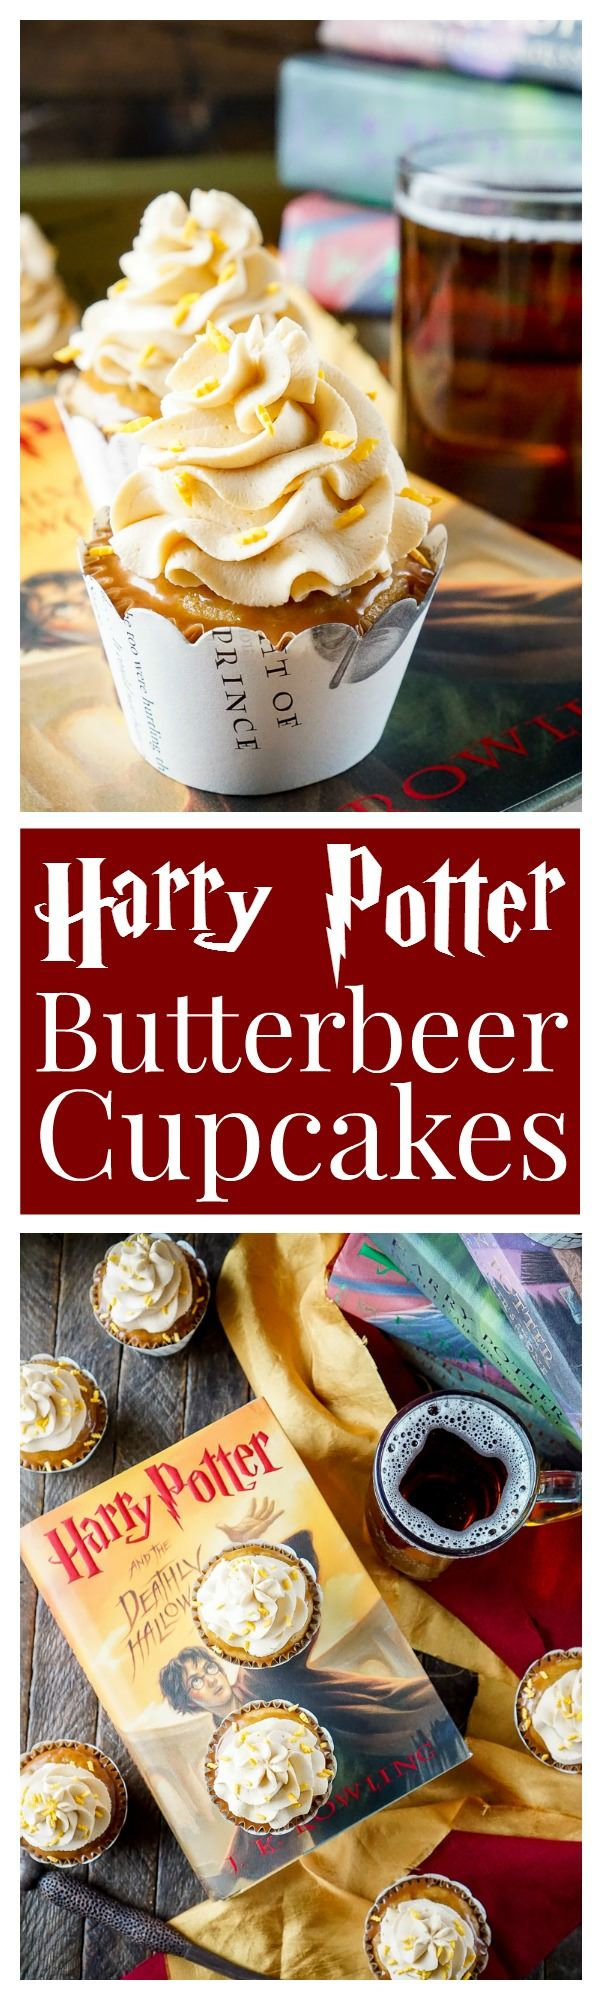 These light and fluffy Harry Potter Butterbeer Cupcakes will cast a spell on…